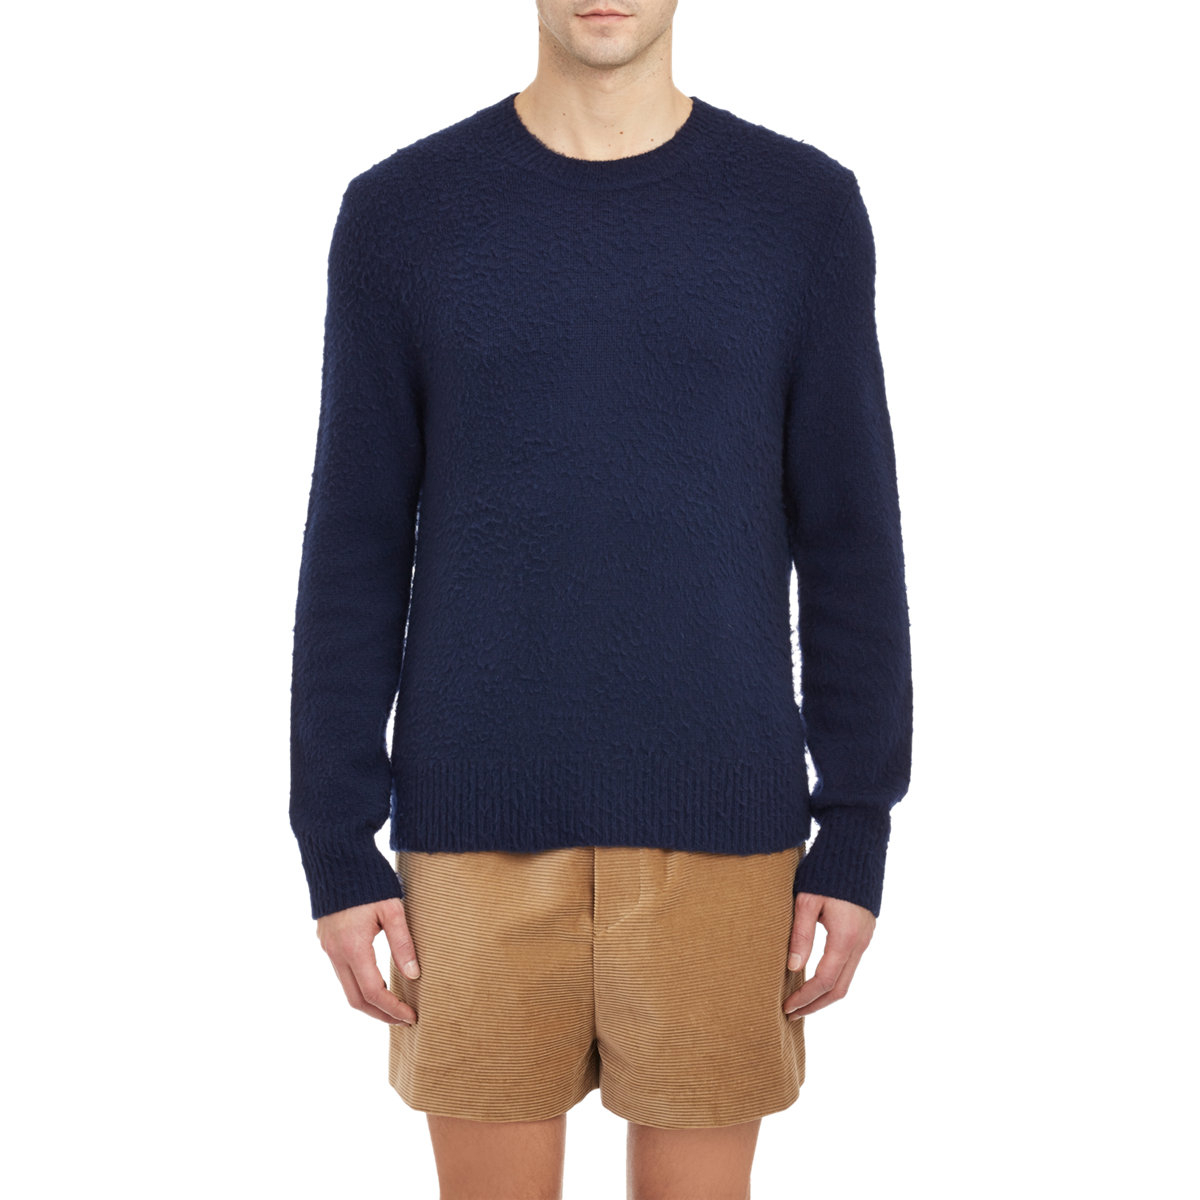 lyst acne studios peele sweater in blue for men. Black Bedroom Furniture Sets. Home Design Ideas